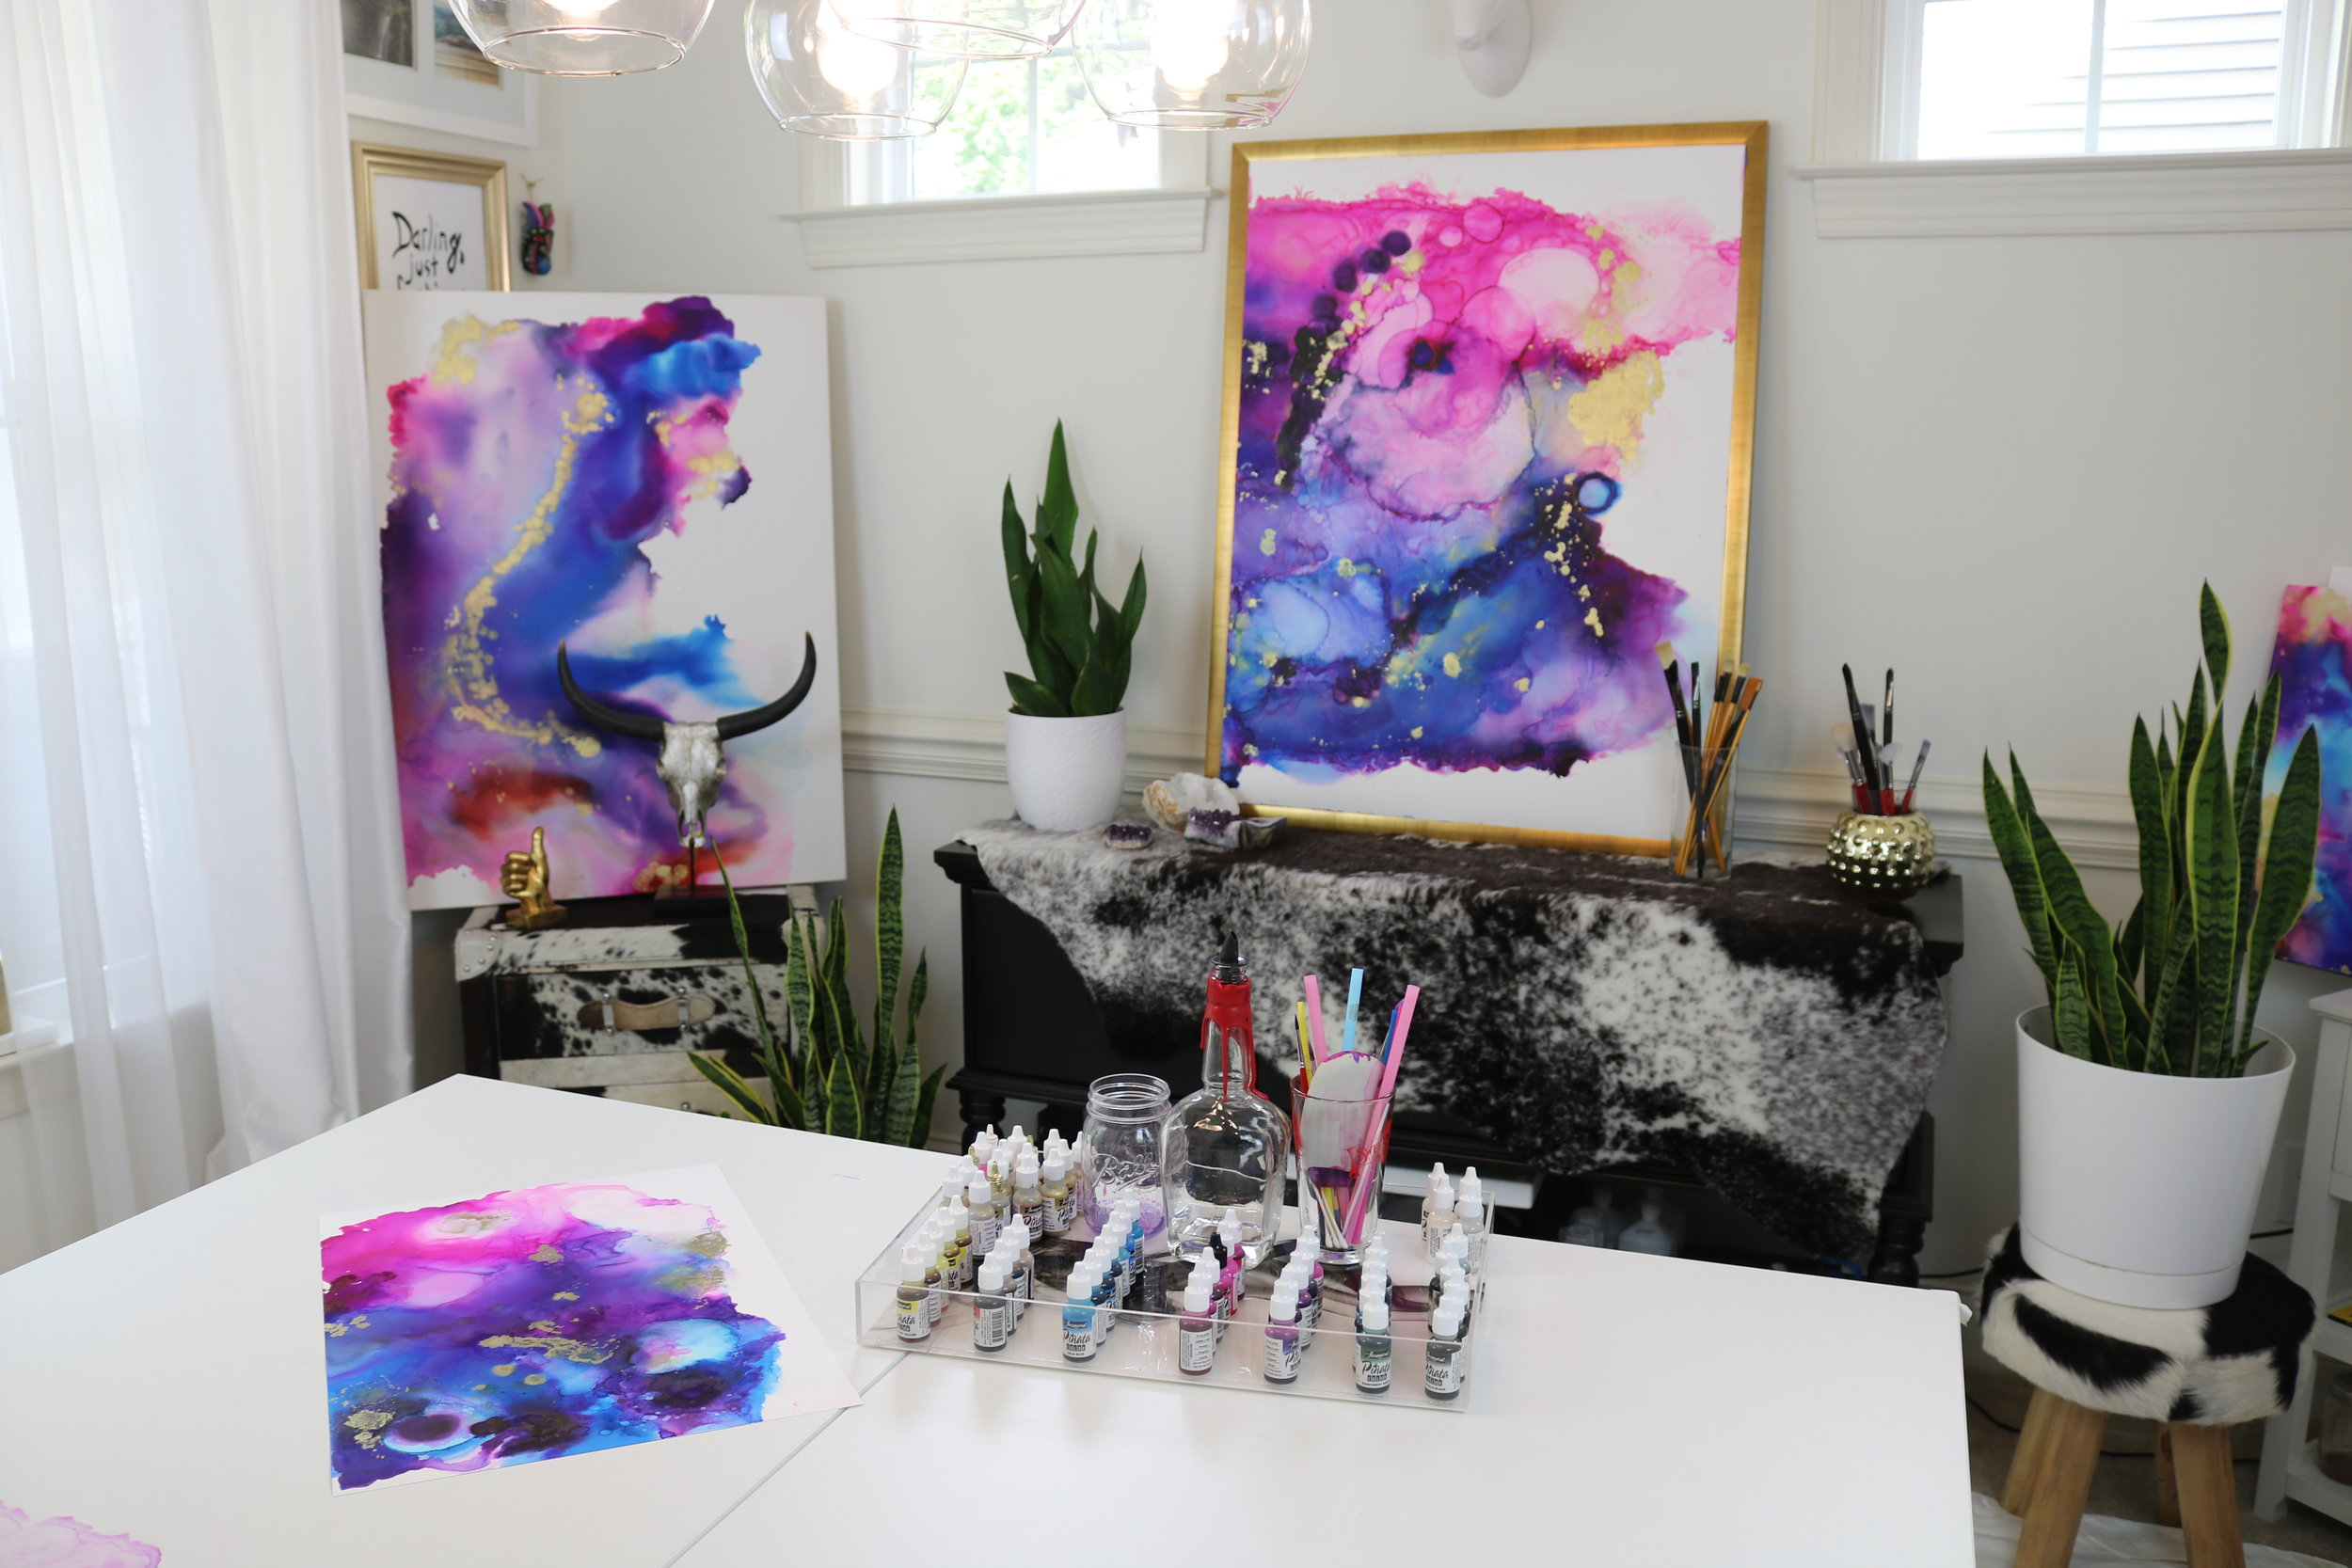 art commission by jenna webb - original painting